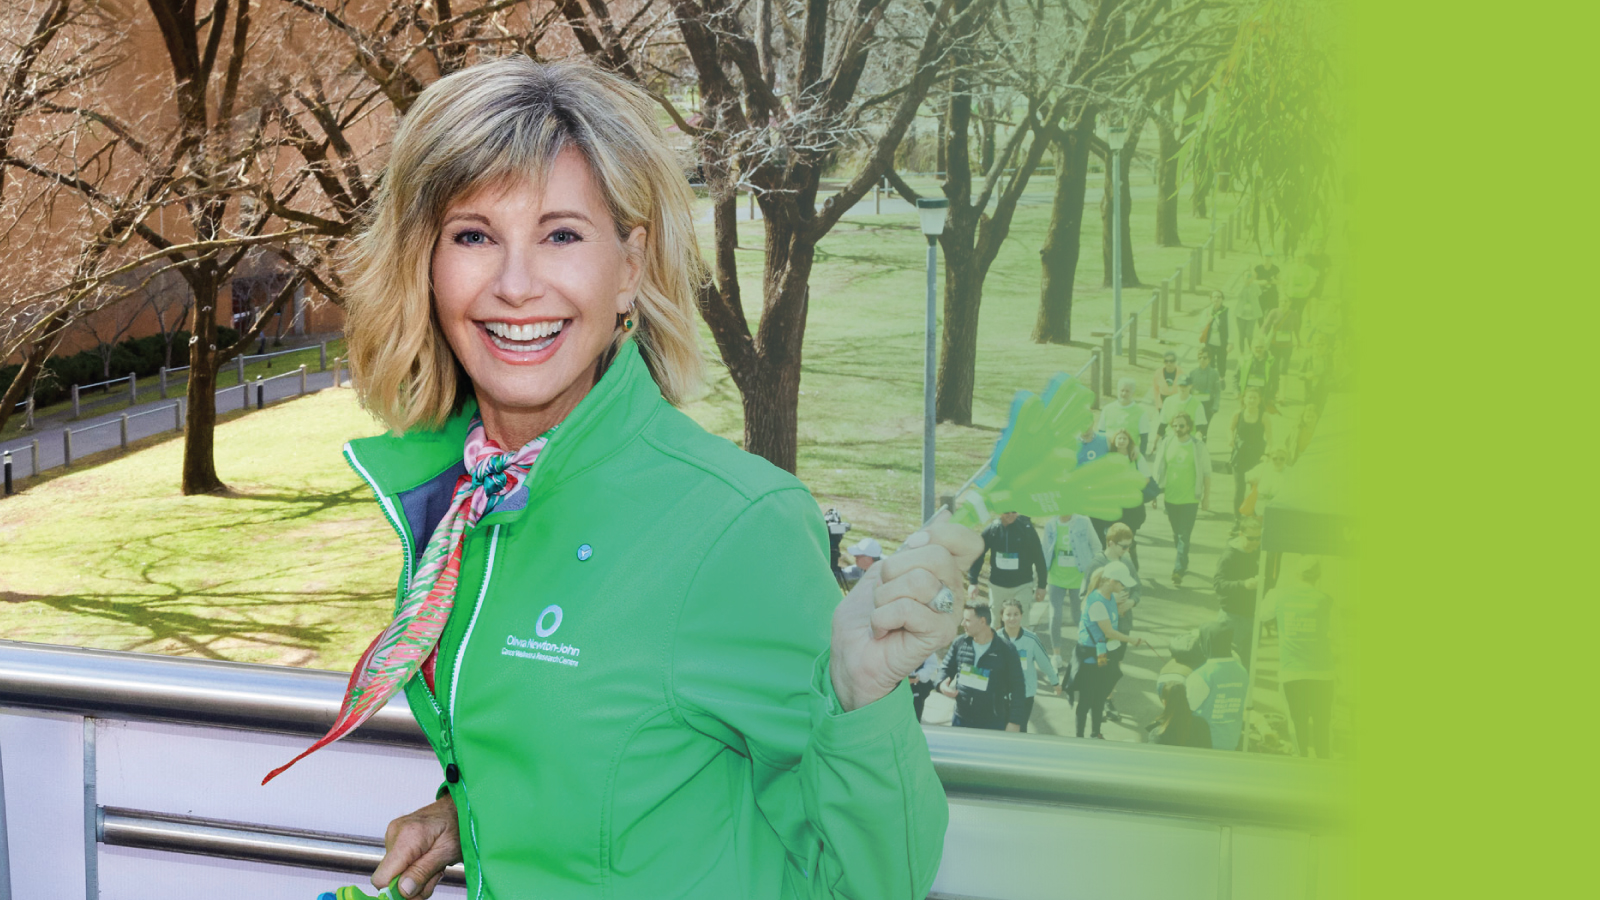 Olivia Newton-John at the 2018 Wellness Walk and Research Run